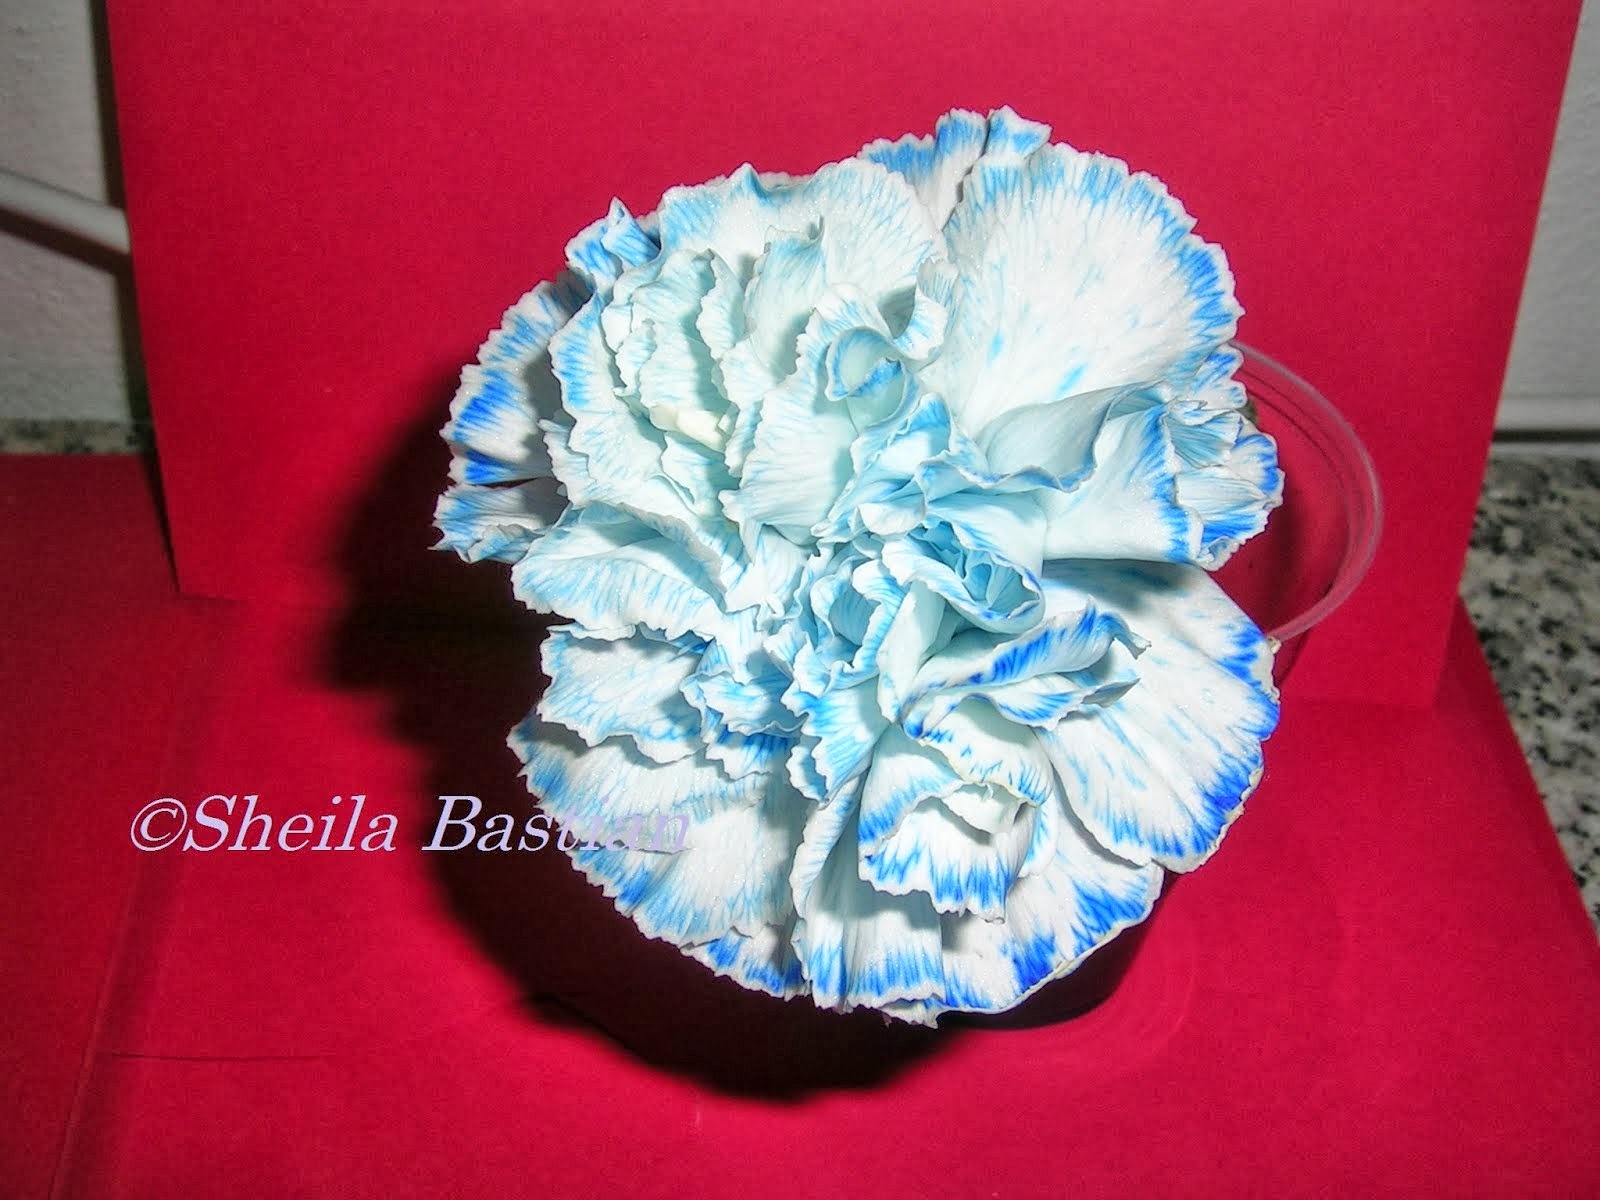 A carnation left in blue ink